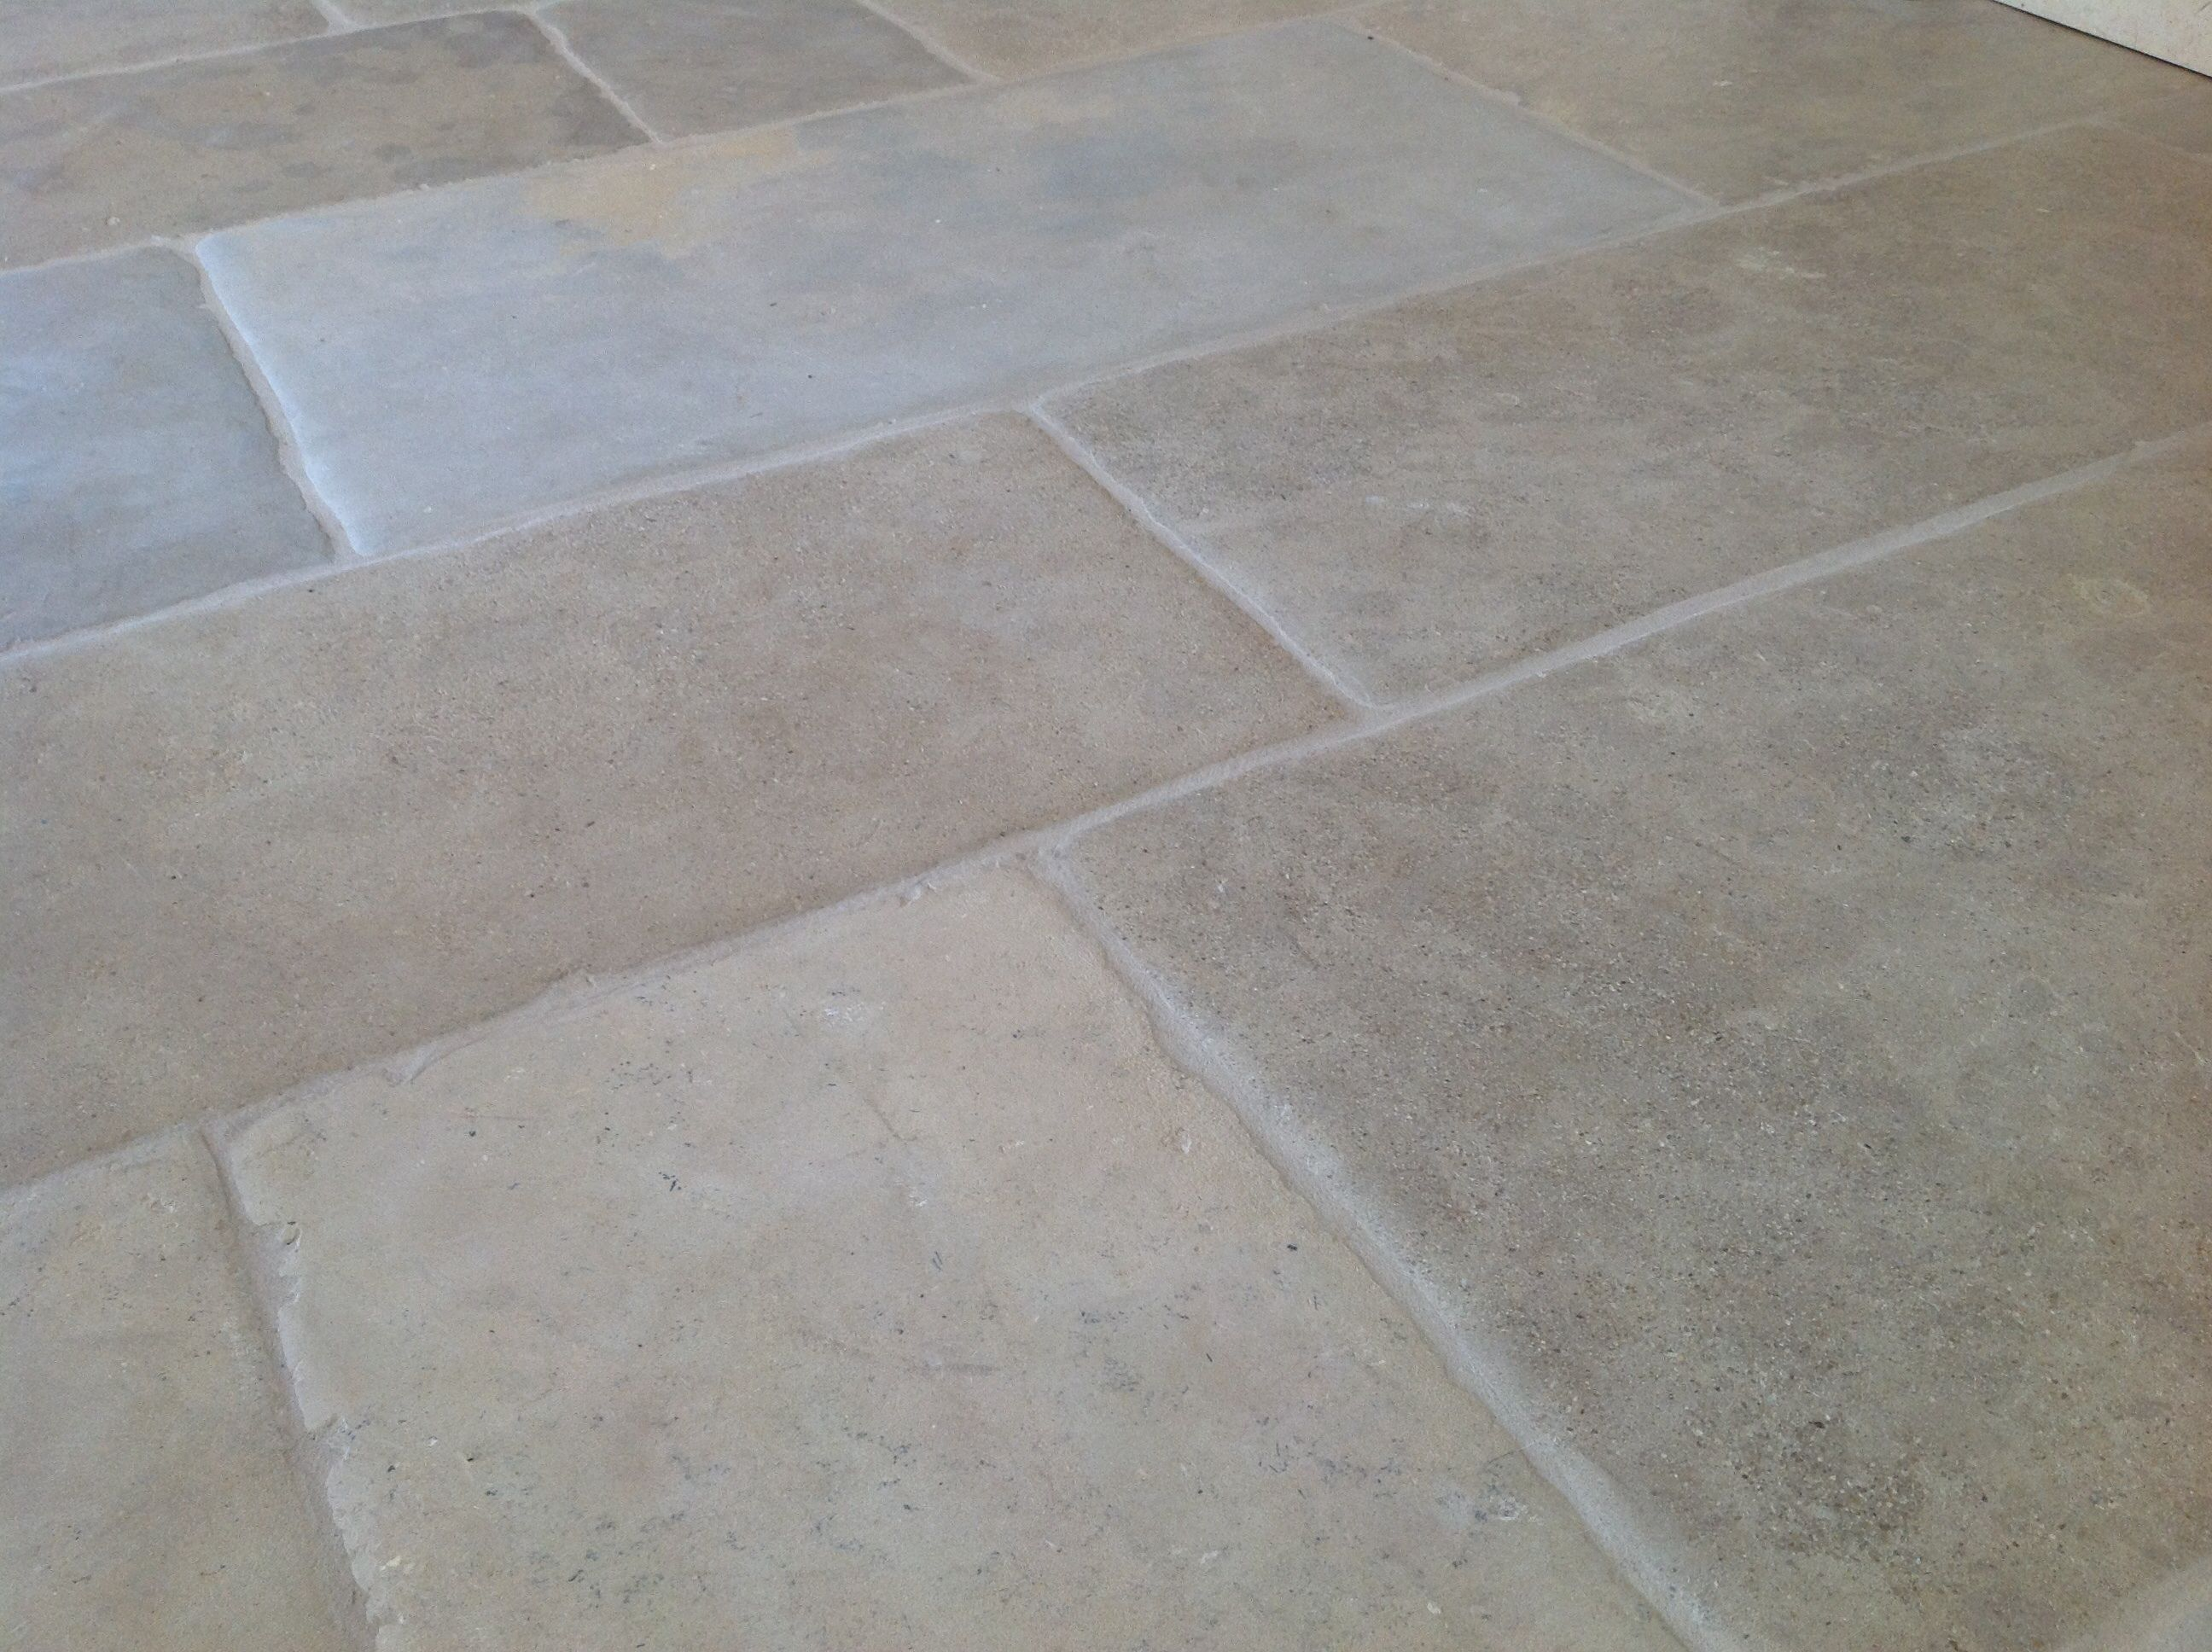 Montpellier stone flooring httpnaturalstoneconsulting natural stone consulting are specialist producers and suppliers of exquisite stone flooring wall tiles flagstones and outdoor paving dailygadgetfo Images